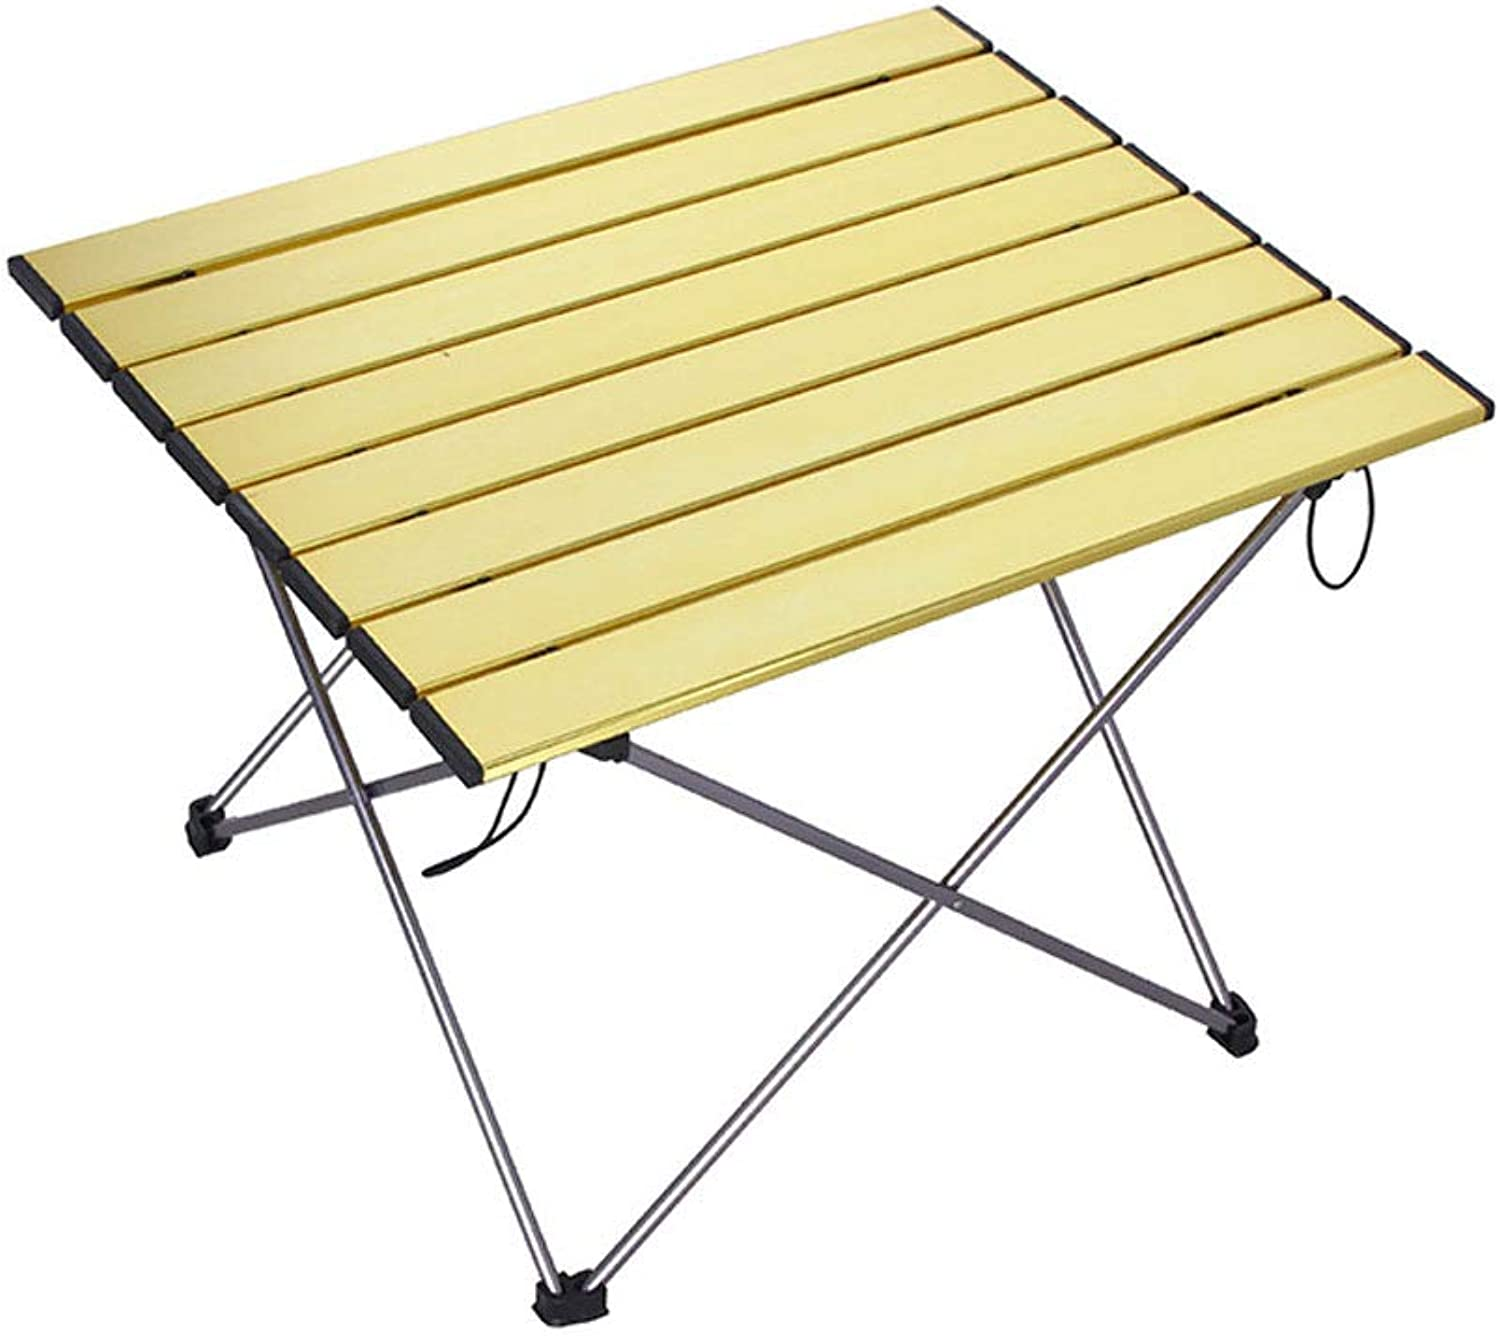 Folding Table -Oxford Cloth Aluminum Alloy5746  41CMsuitable Camping Picnic